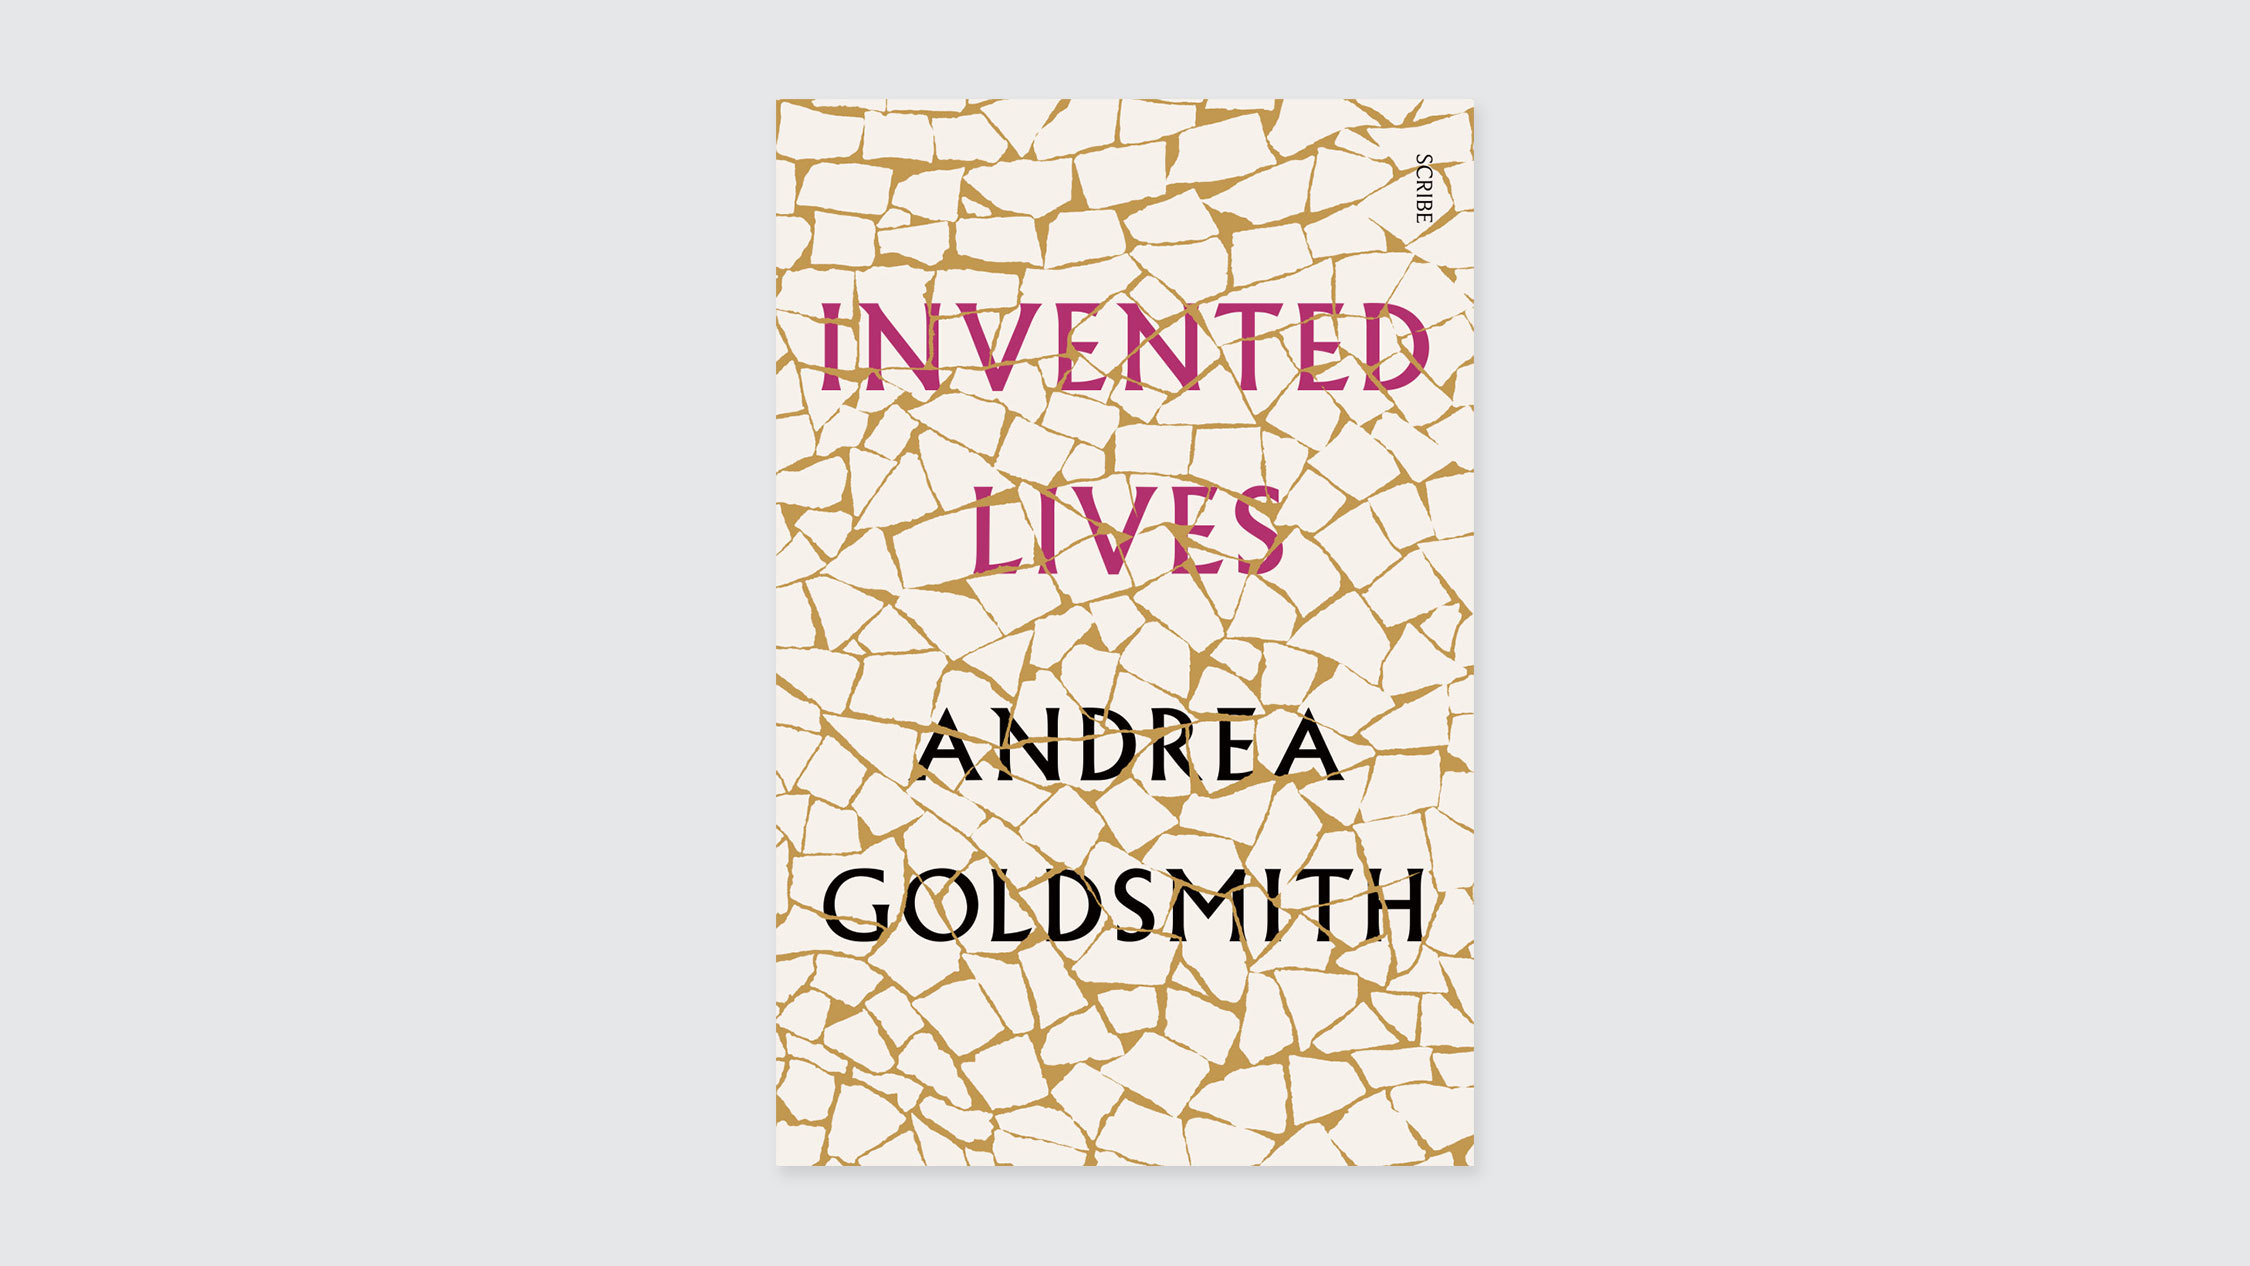 Invented Lives by Andrea Goldsmith